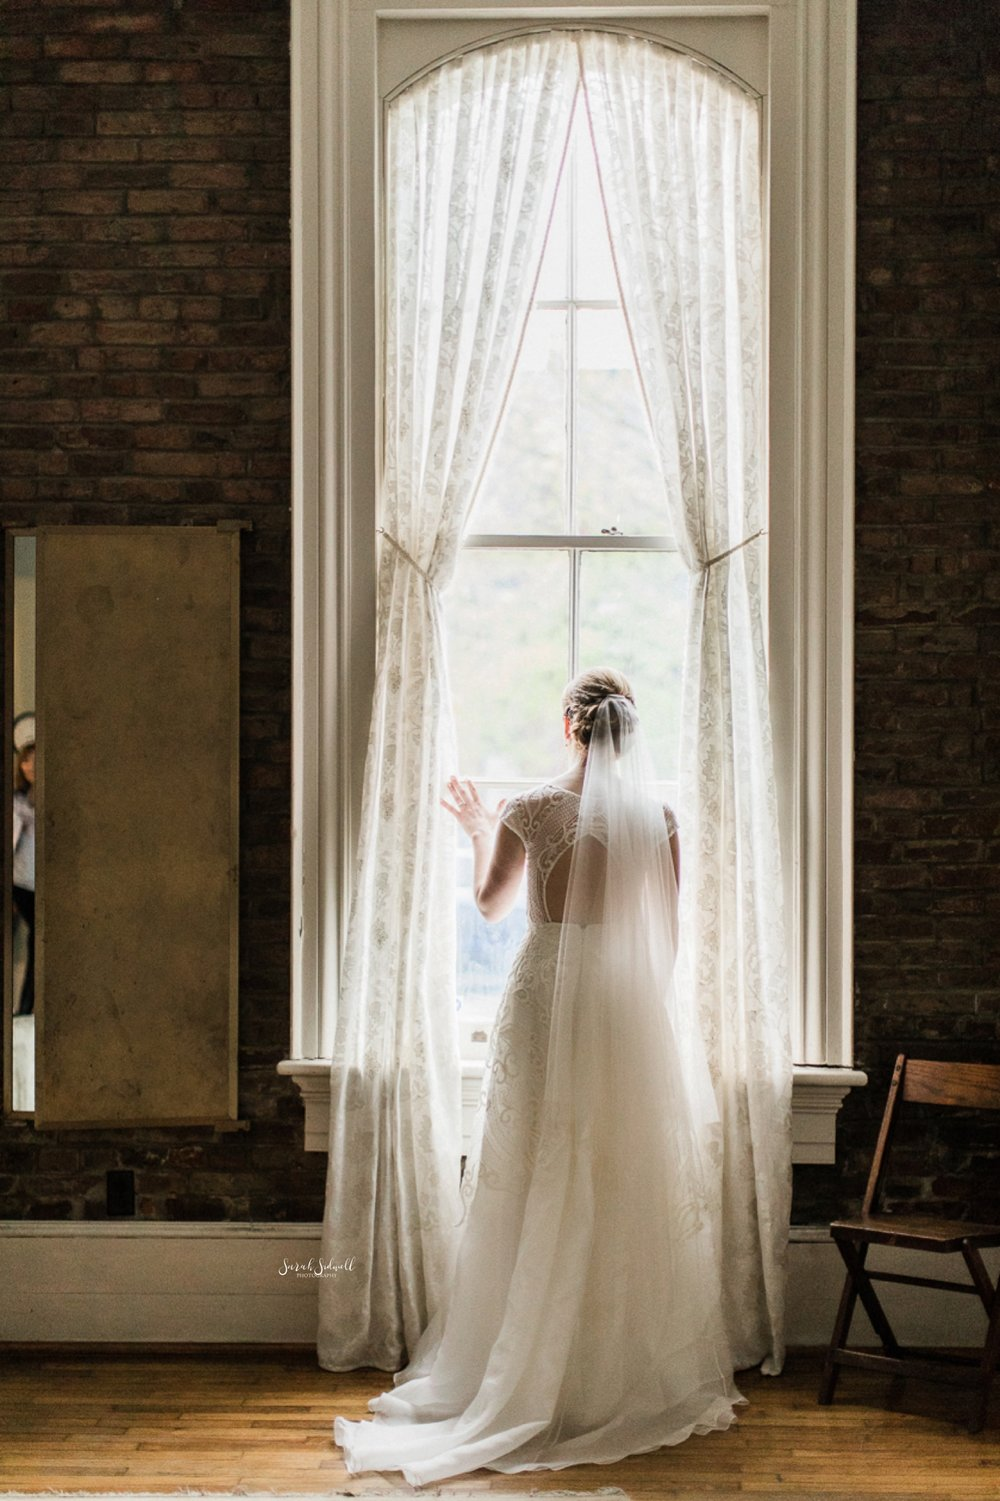 A bride in a white dress stands looking out of a tall window.